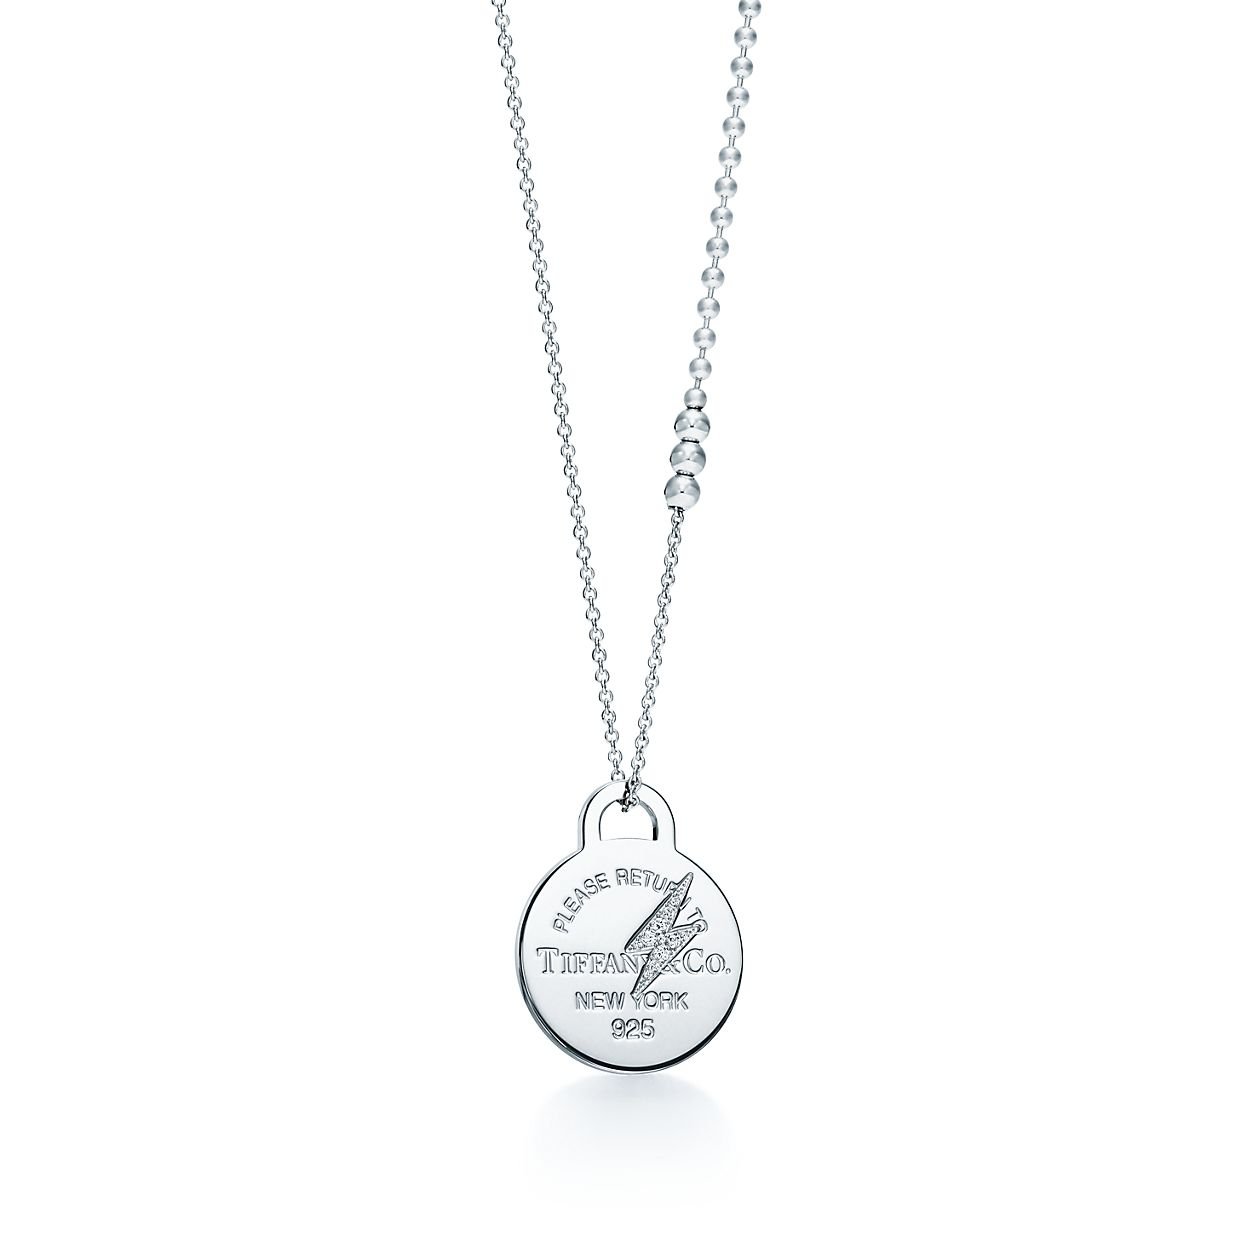 engraved silver pendant disc zoom john engraving with personalised necklace women greed heart